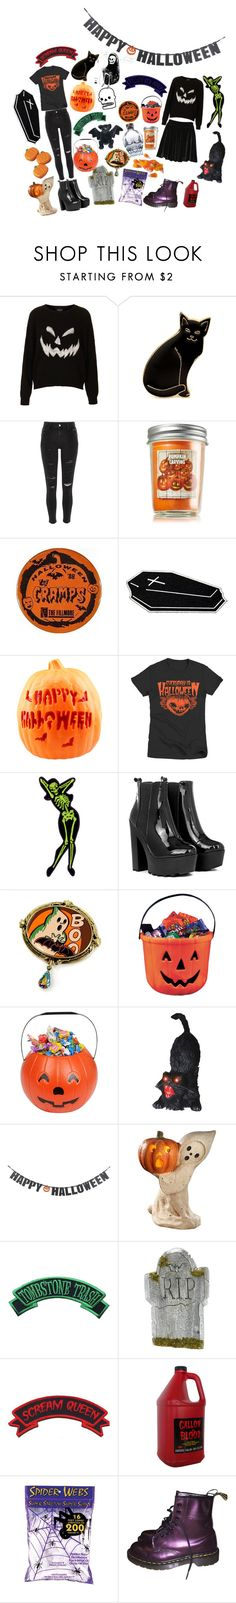 """(a super late halloween set)"" by sarabeanxo ❤ liked on Polyvore featuring Topshop, Calourette, River Island, CO, Sweet Romance, Buy Seasons, Crate and Barrel, Bethany Lowe, Kreepsville 666 and Dr. Martens"